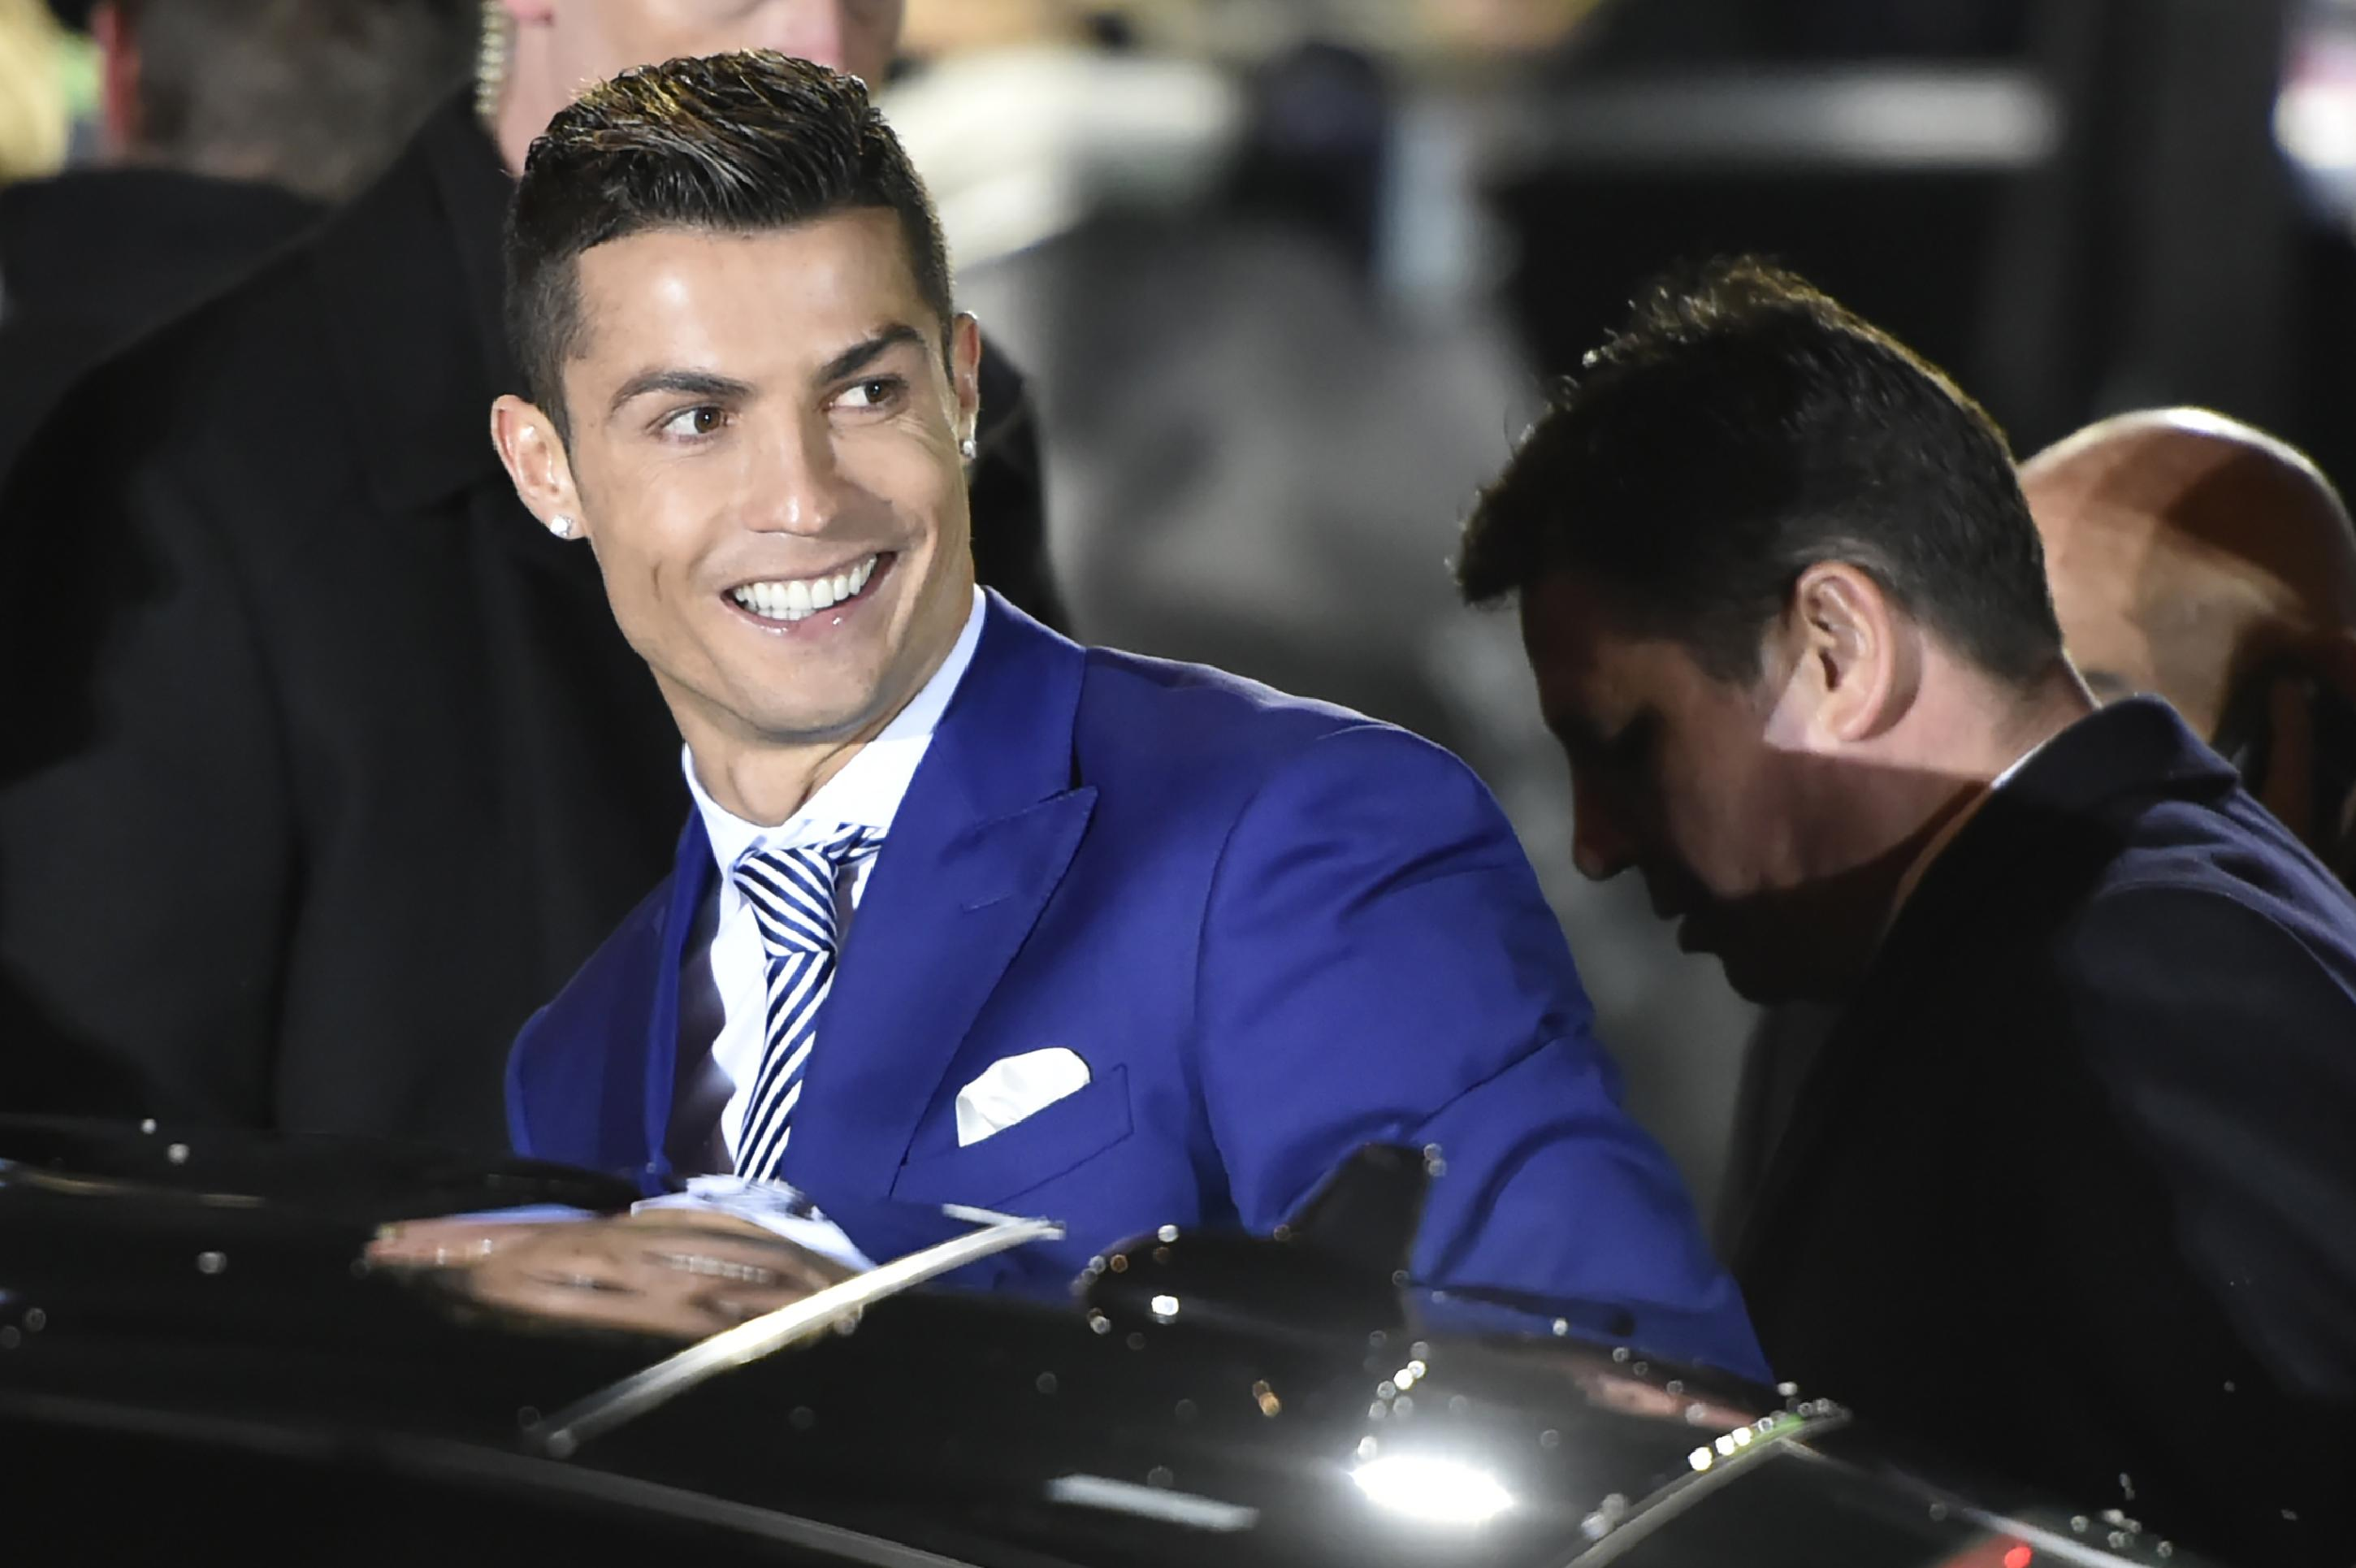 Cristiano Ronaldo Denies Wanting to Leave Madrid But Admits He 'Felt Mistreated'